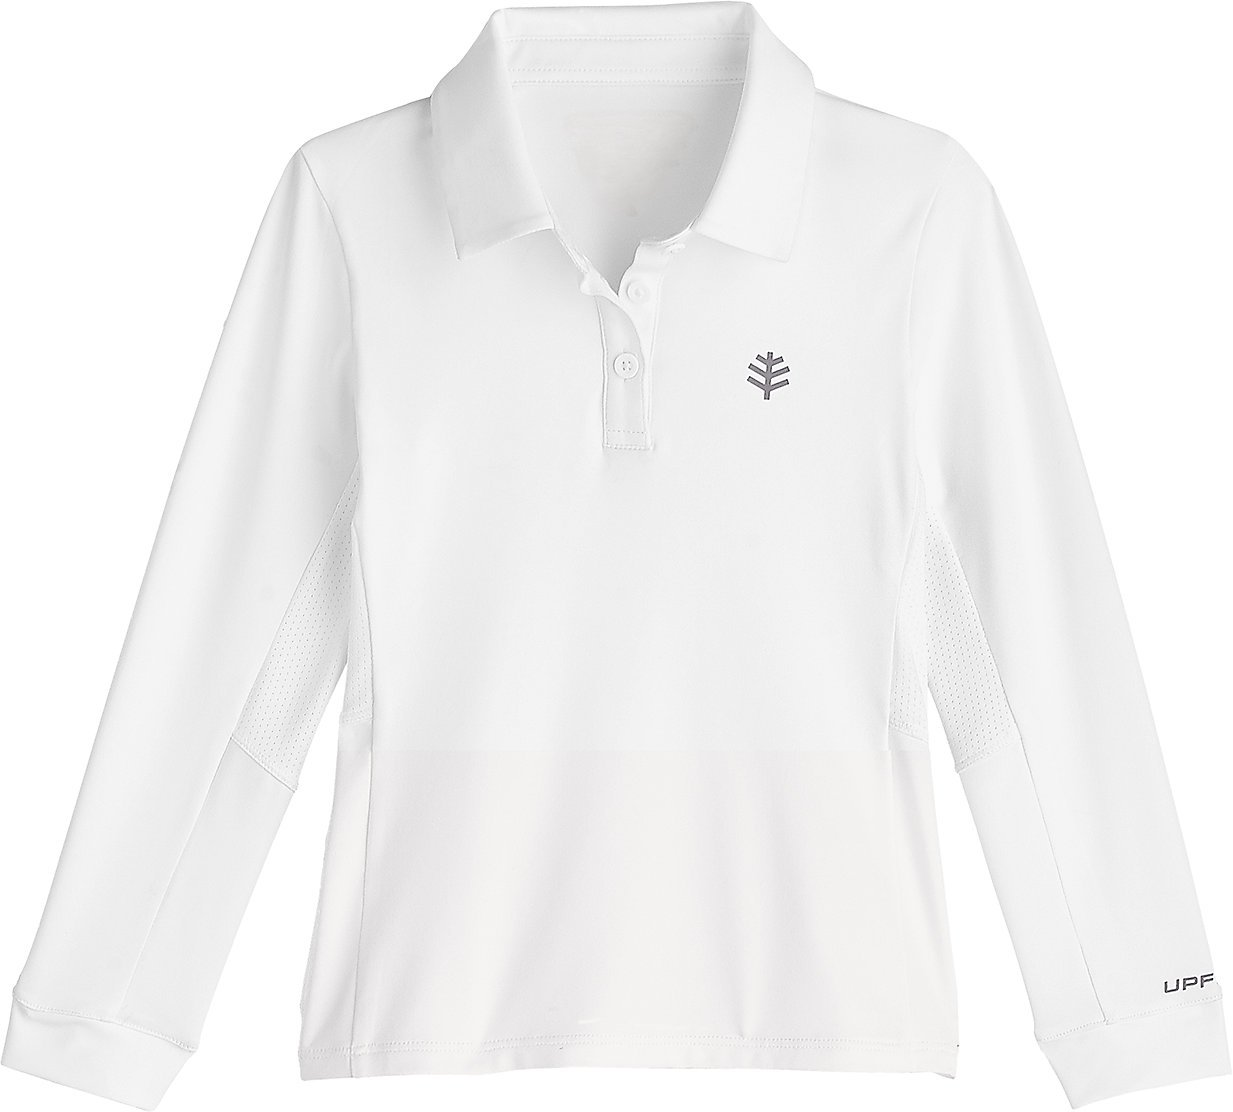 Coolibar UPF 50+ Girls' Long Sleeve Par Polo - Sun Protective (Small- White) by Coolibar